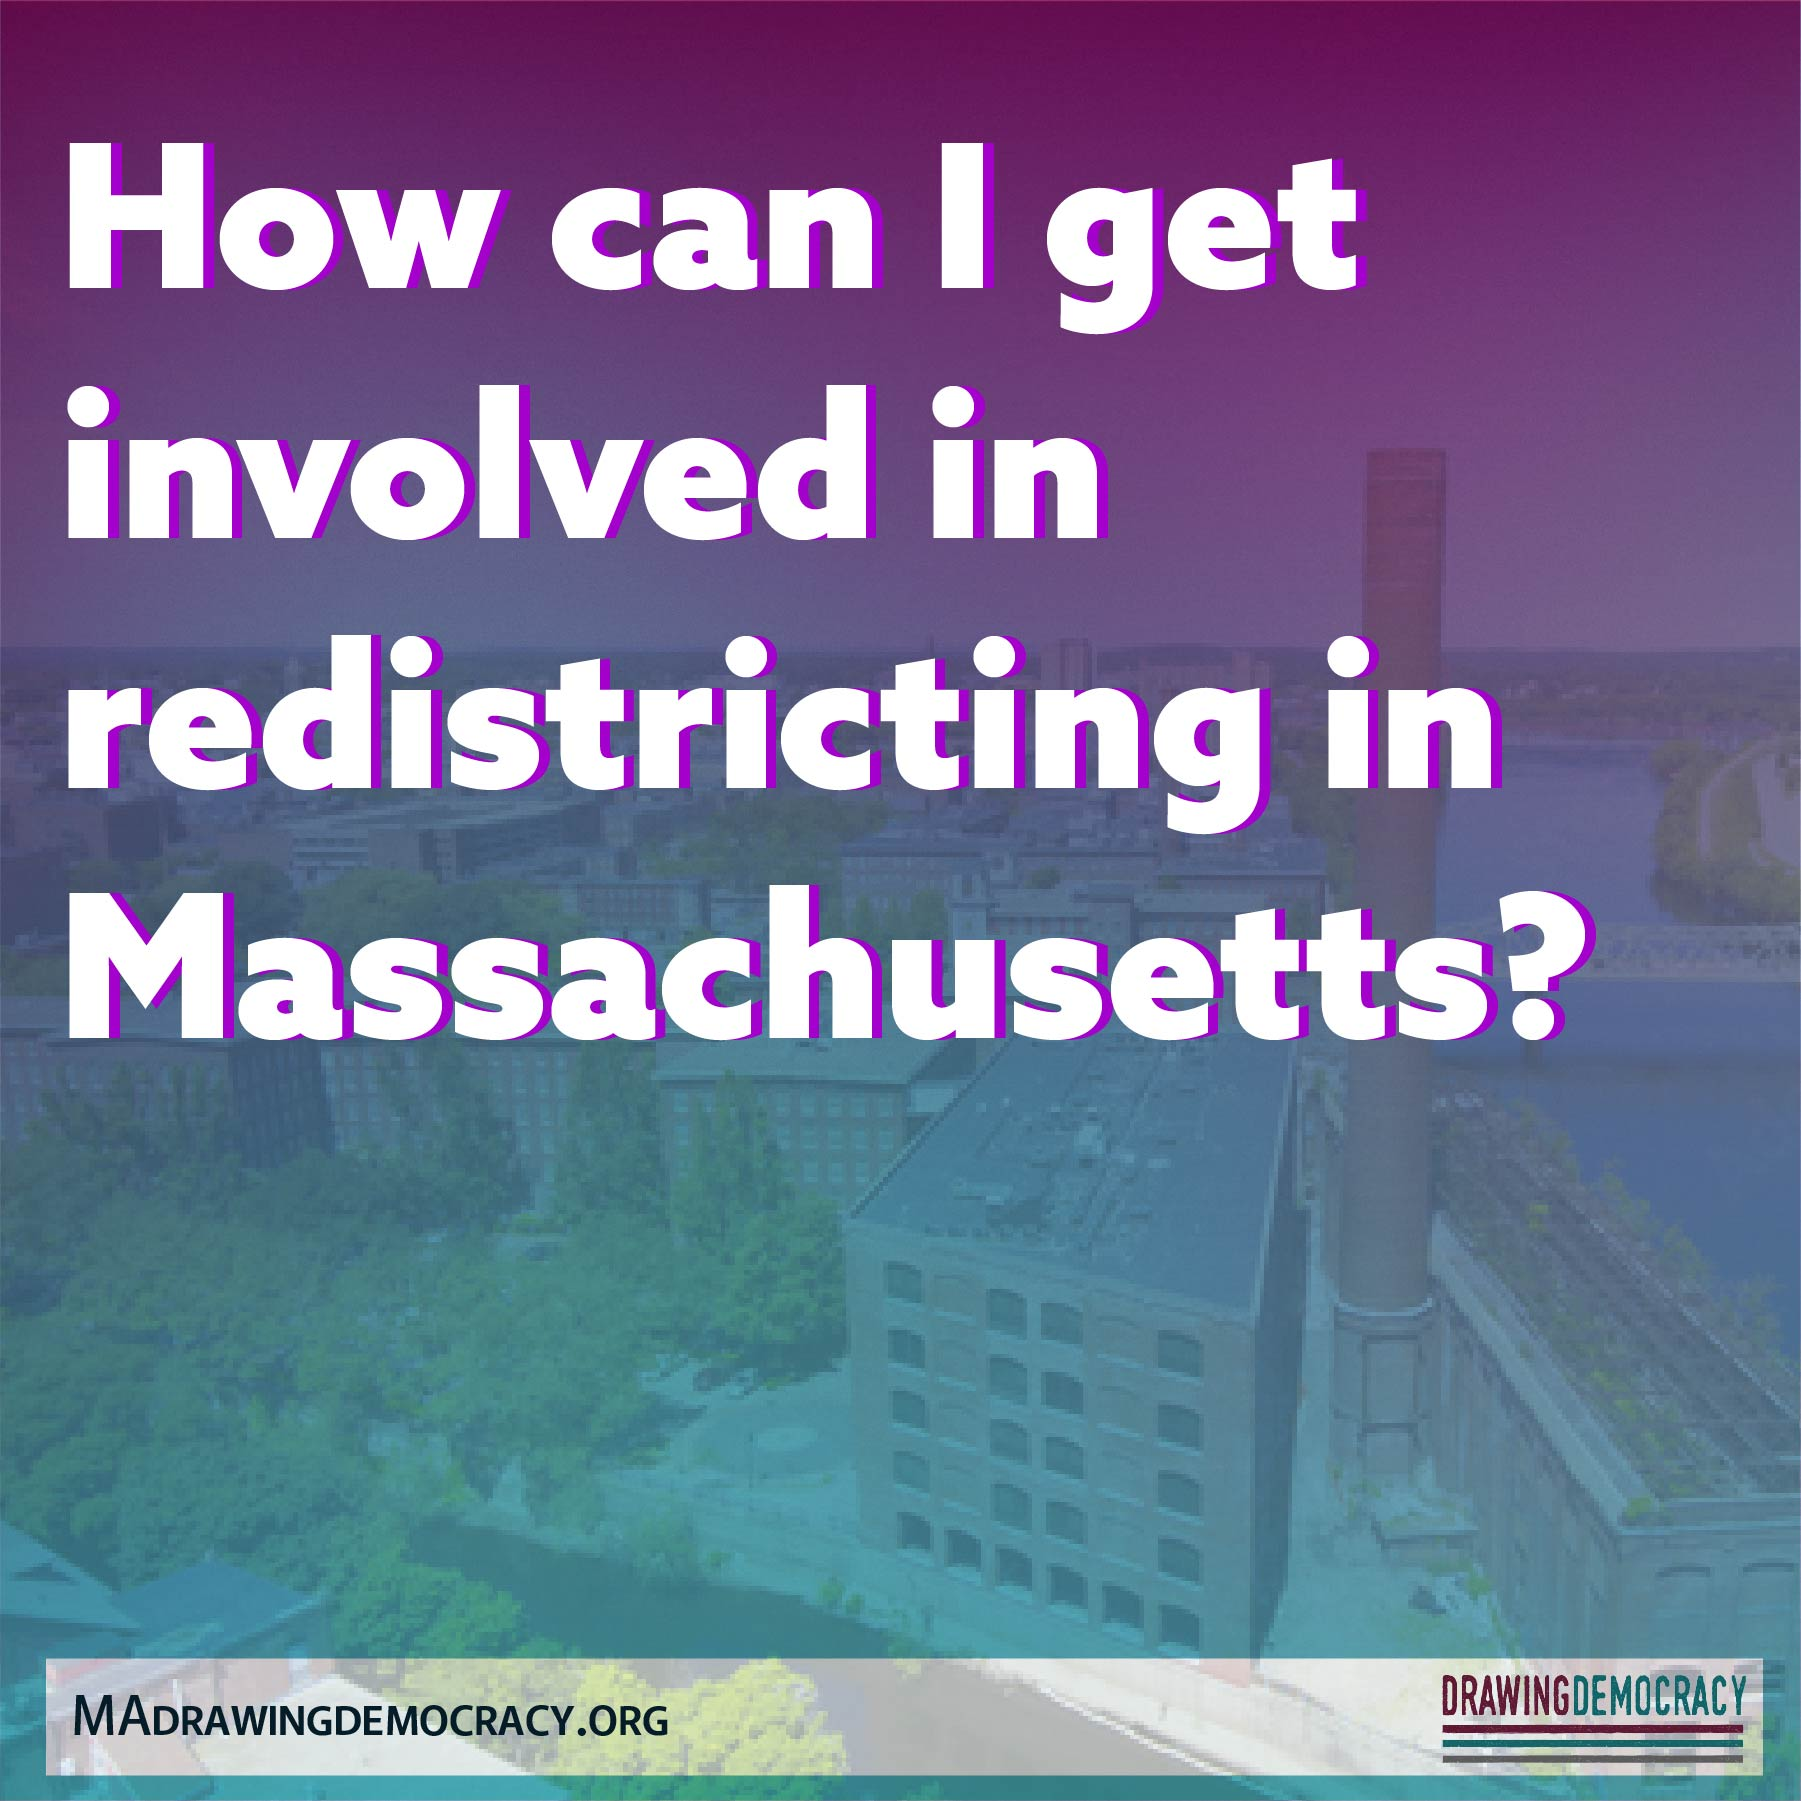 """Drawing Democracy provides answers to the question: """"How can I get involved in redistricting?"""""""